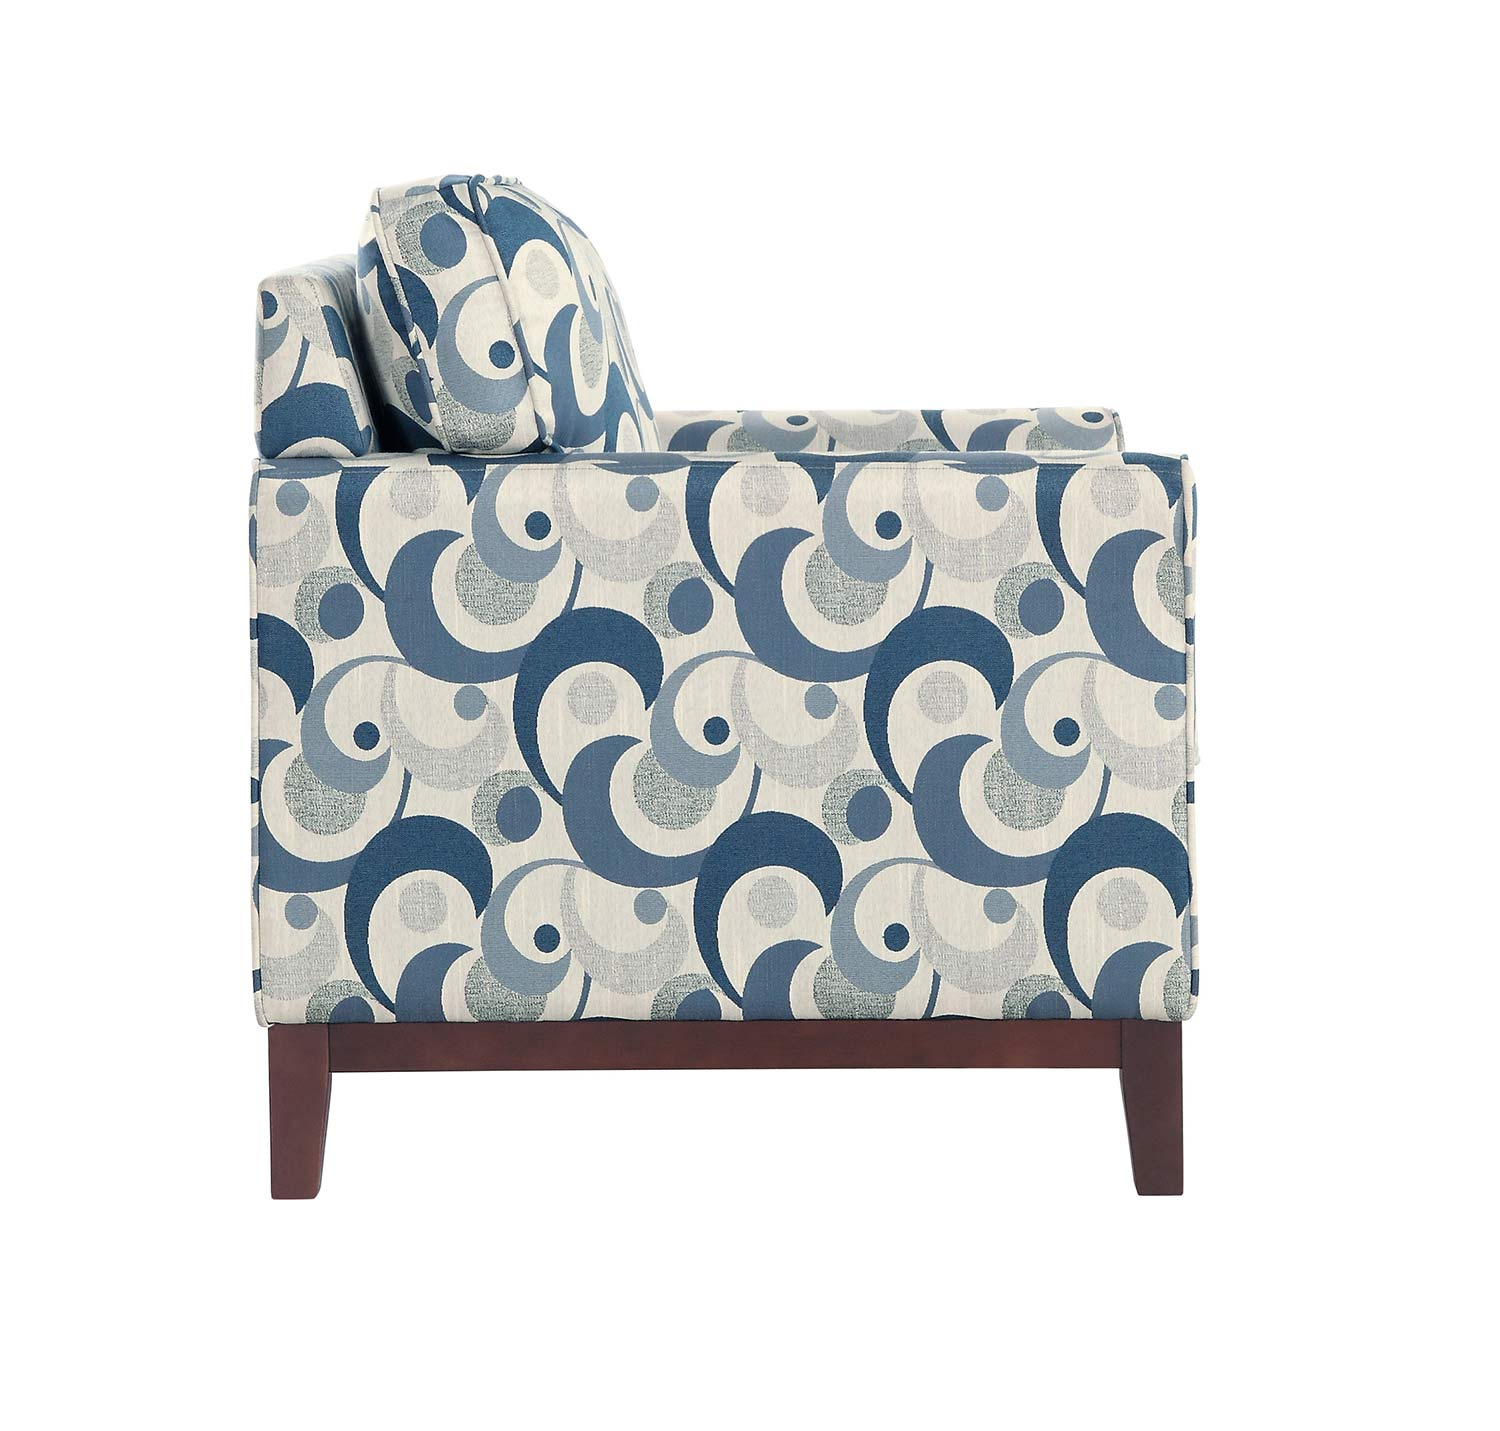 Homelegance Blue Lake Accent Chair - Gray